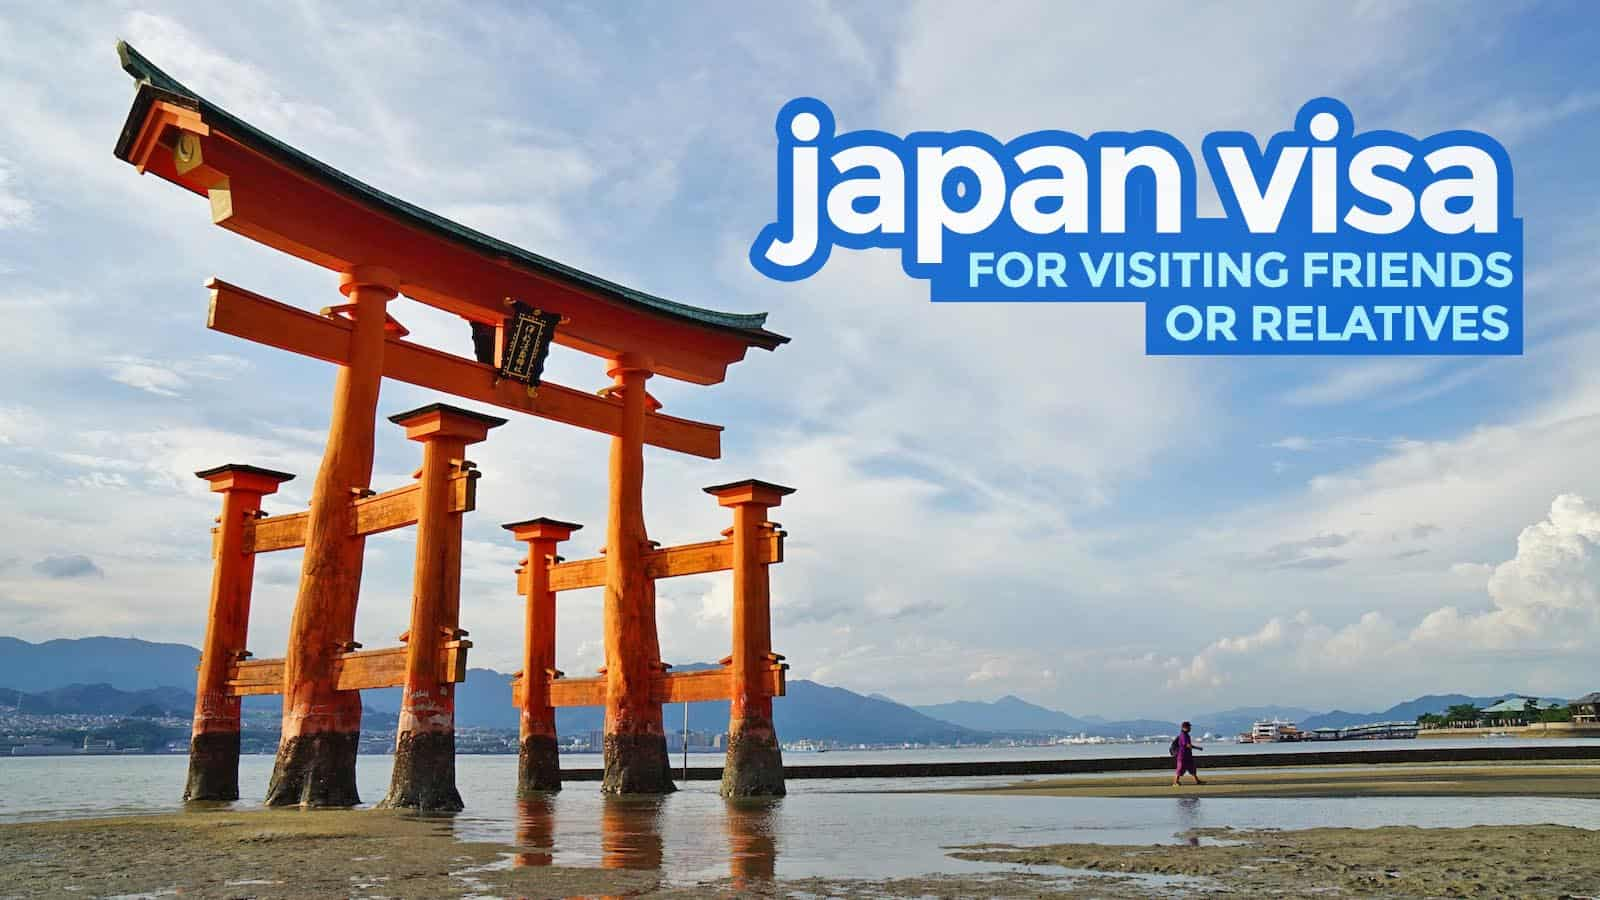 JAPAN VISA FOR VISITING FRIENDS OR RELATIVES: Requirements 2020